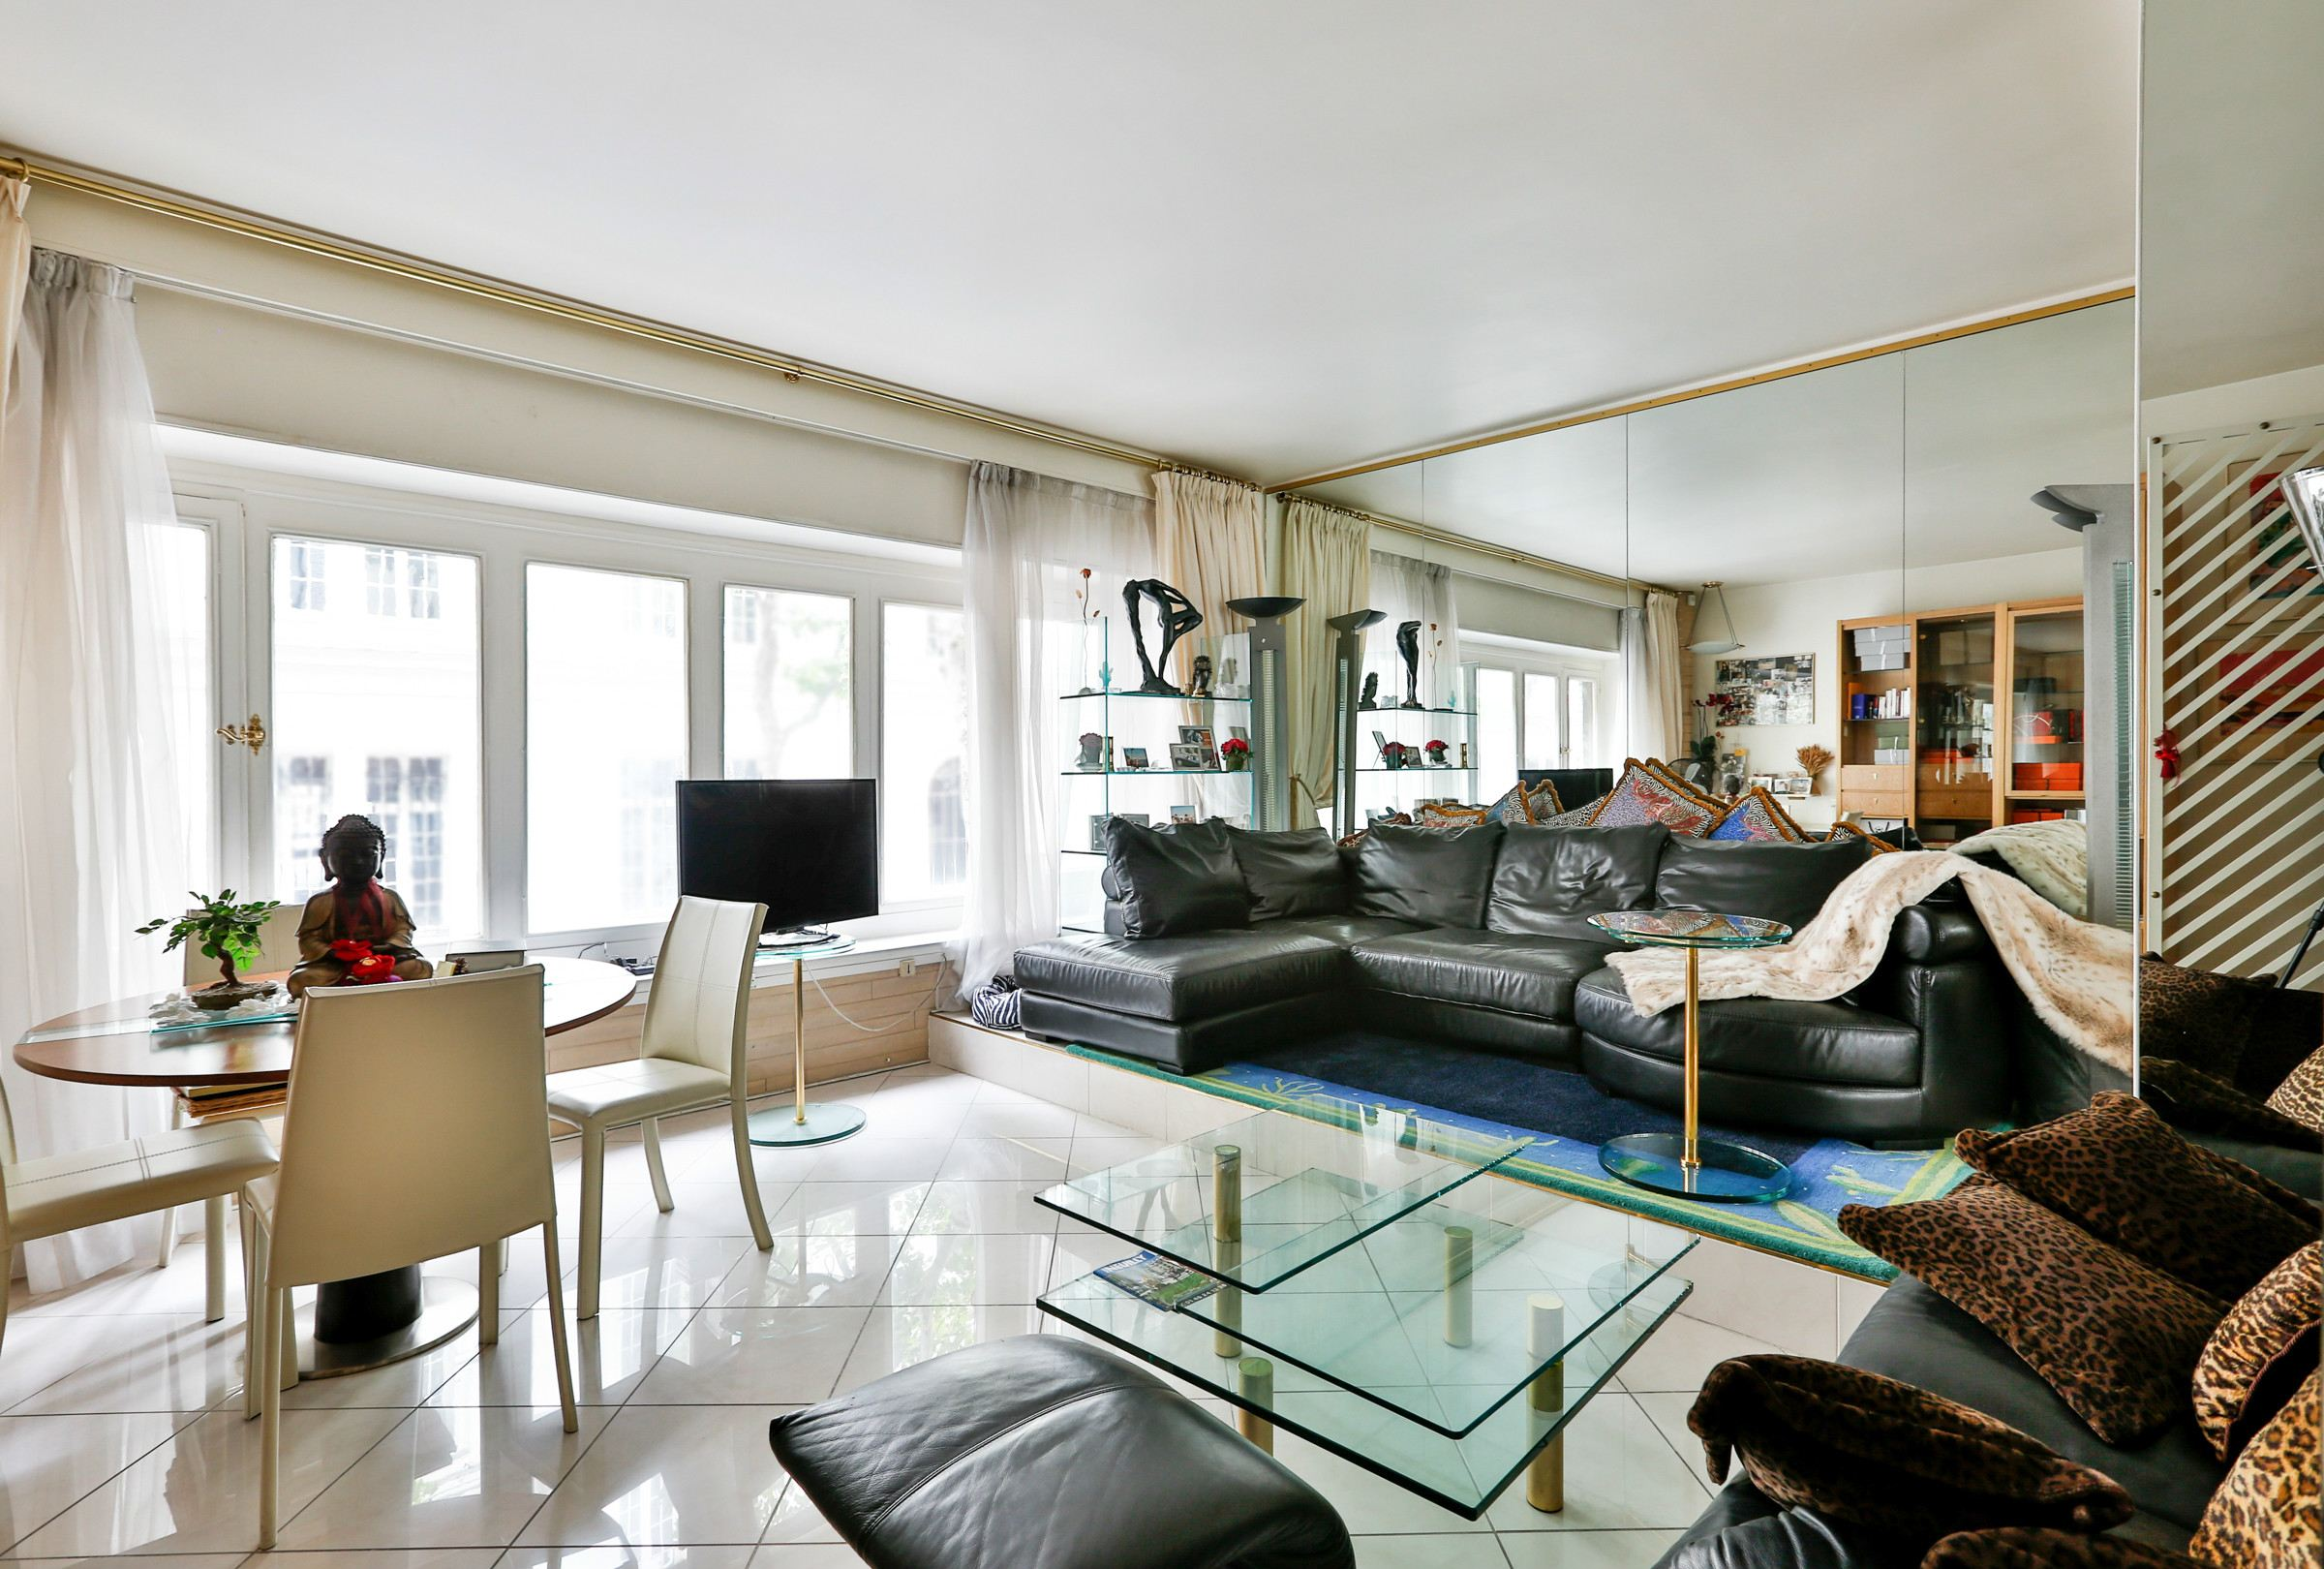 Property For Sale at Neuilly - Sablons. Apartment. Ideally located